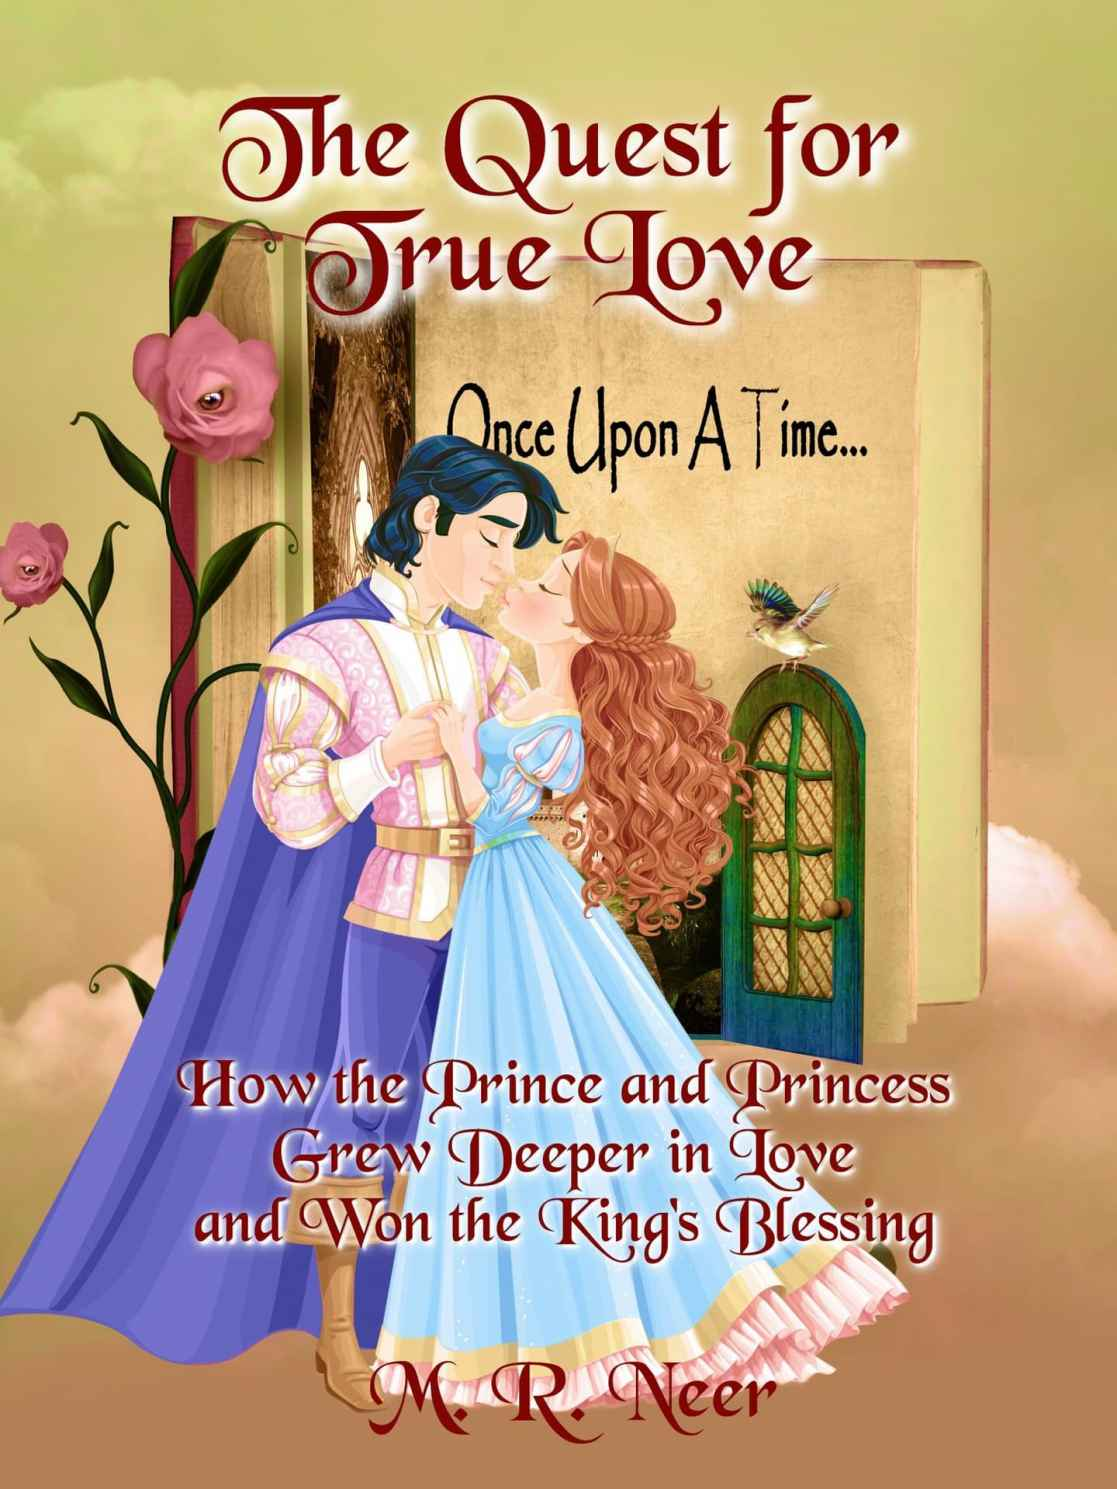 The Four Tasks of Love: How the Prince and Princess Grew Deeper in Love and Won the King's Blessing